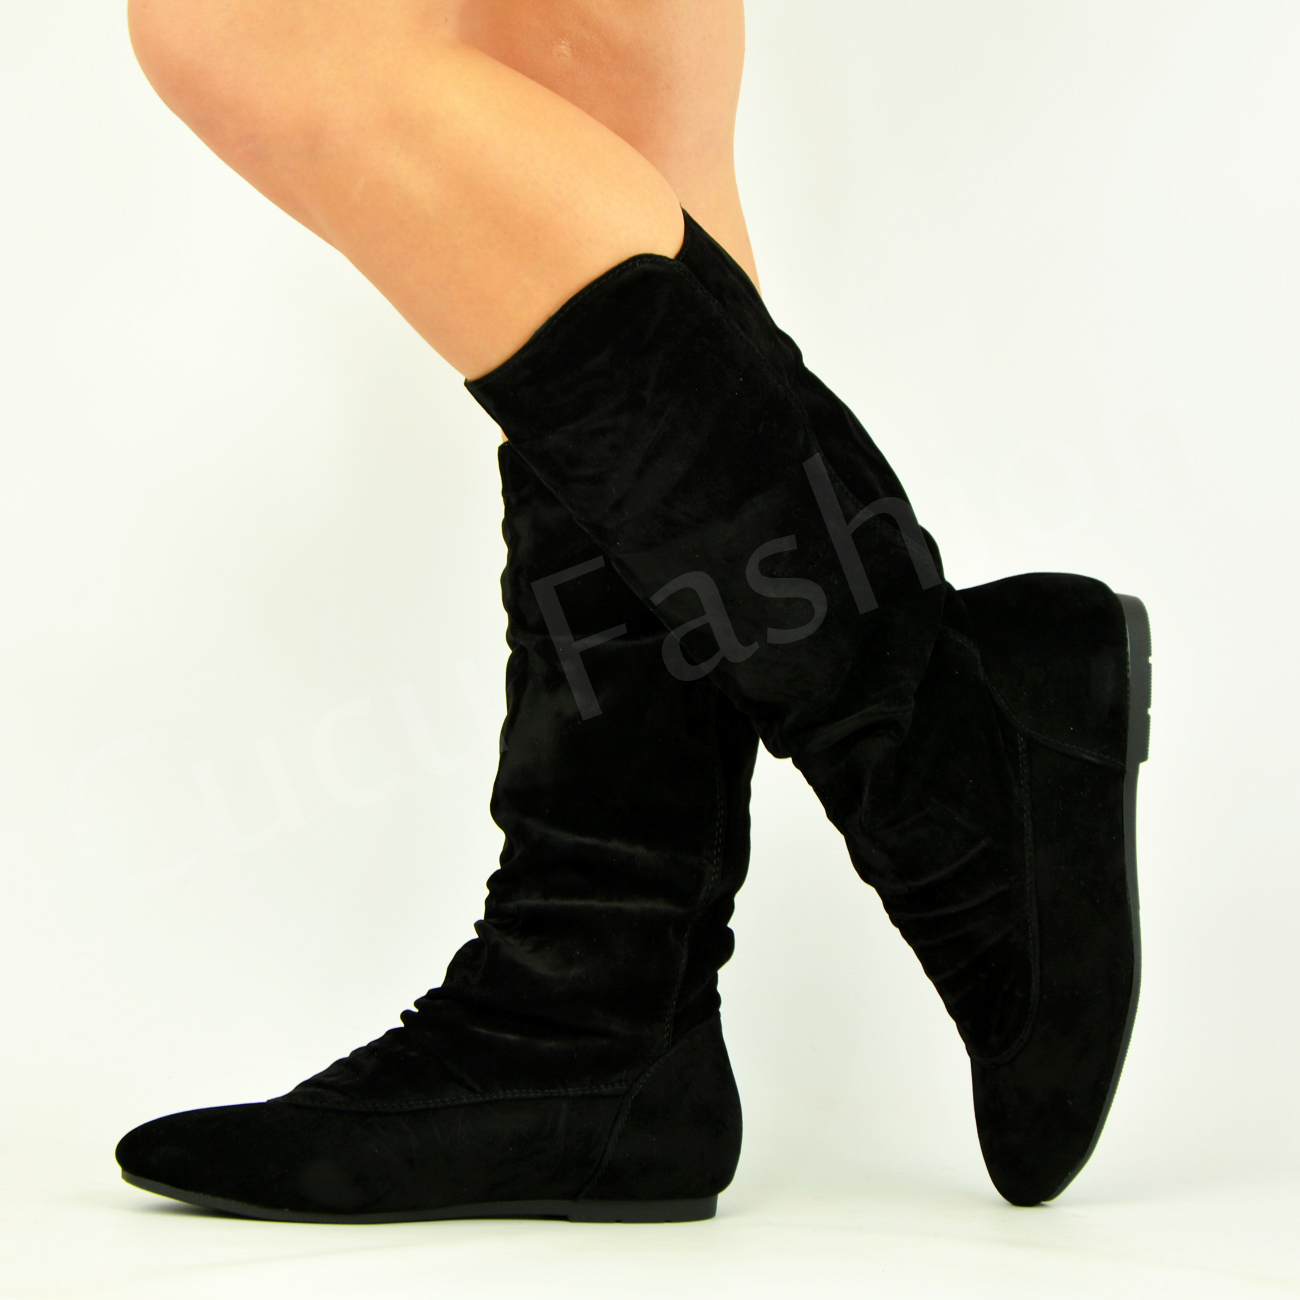 New Womens Ladies Low Flat Heel Pull On Mid Calf Boots ...